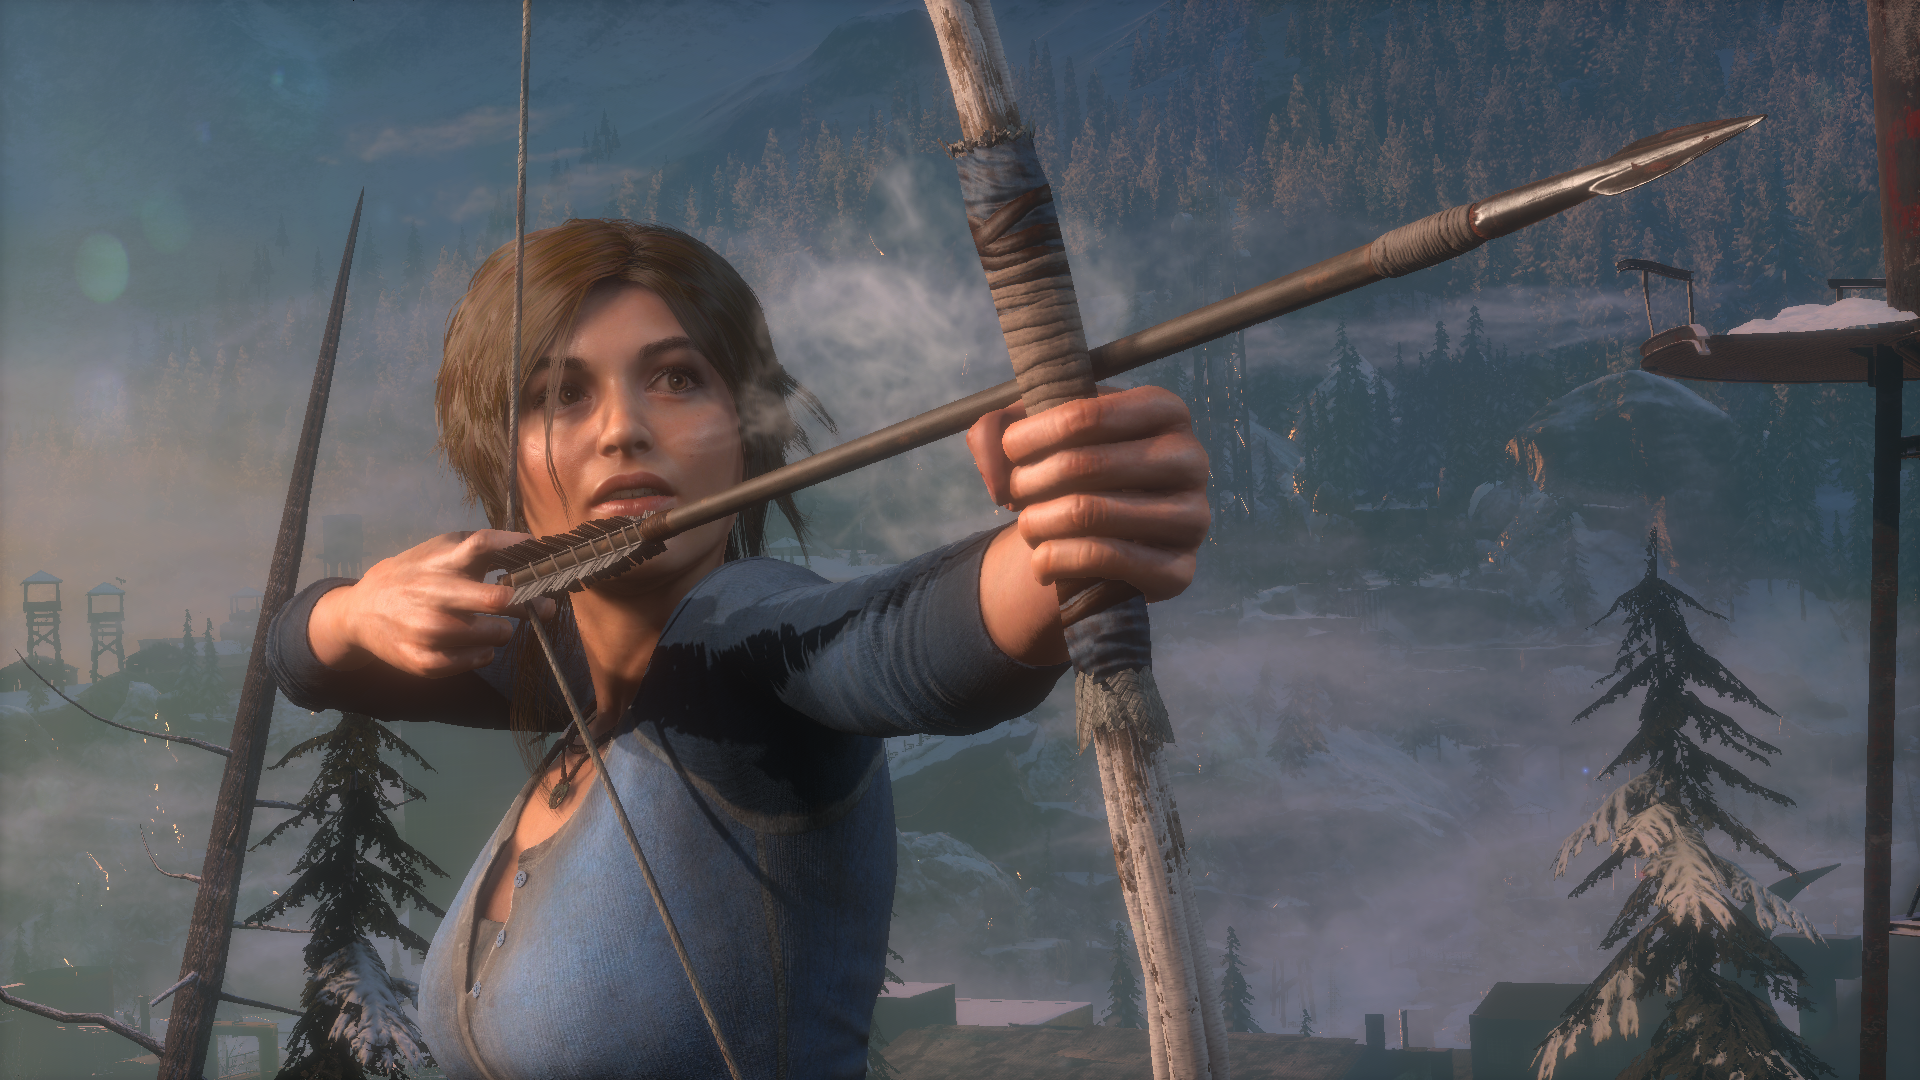 General 1920x1080 Rise of the Tomb Raider Tomb Raider video games Video Game Heroes Lara Croft bow